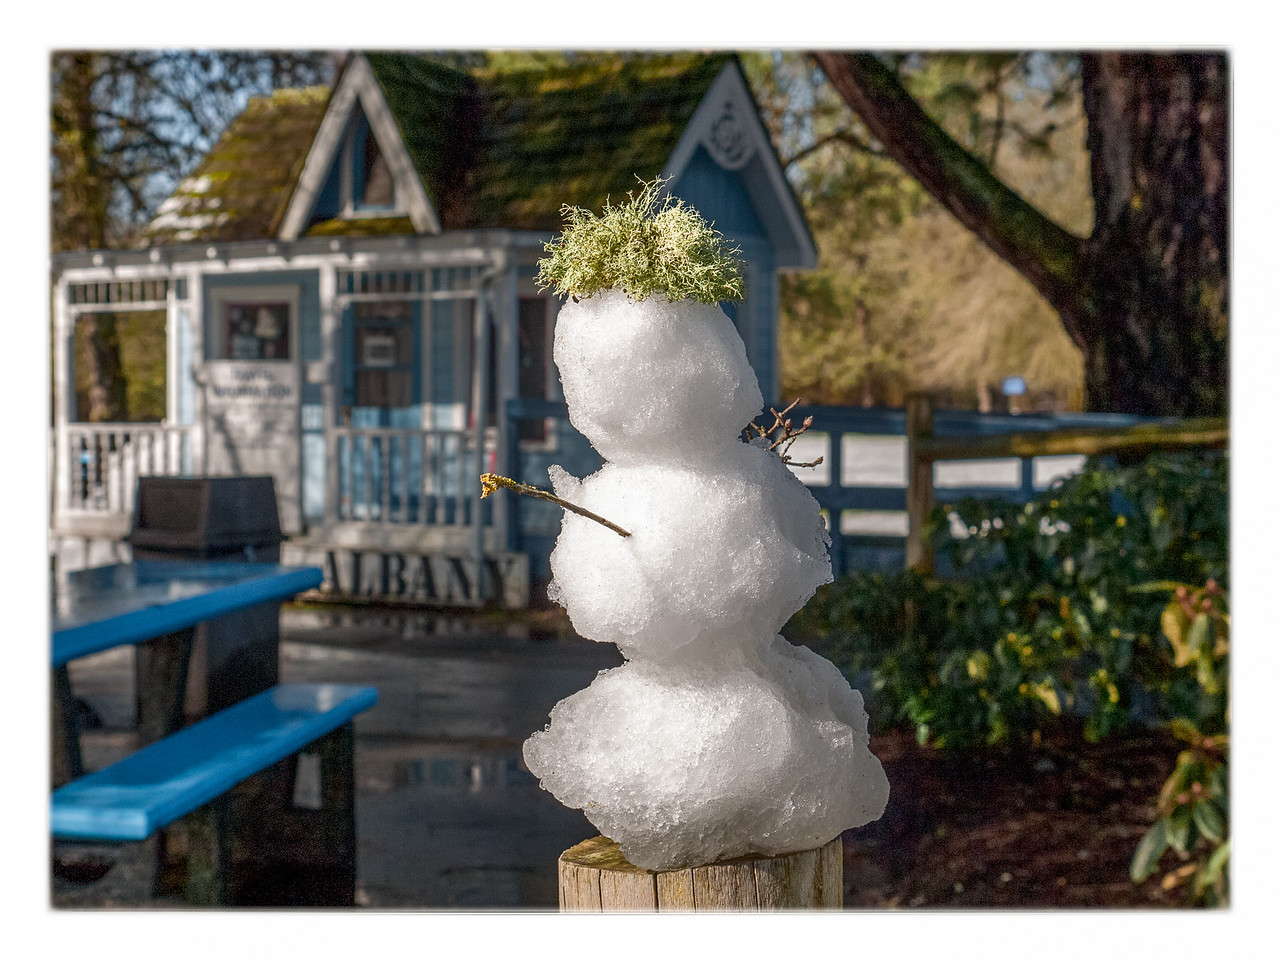 Somebody has built a minature snowman which I top with a tuft of moss i find on the ground.